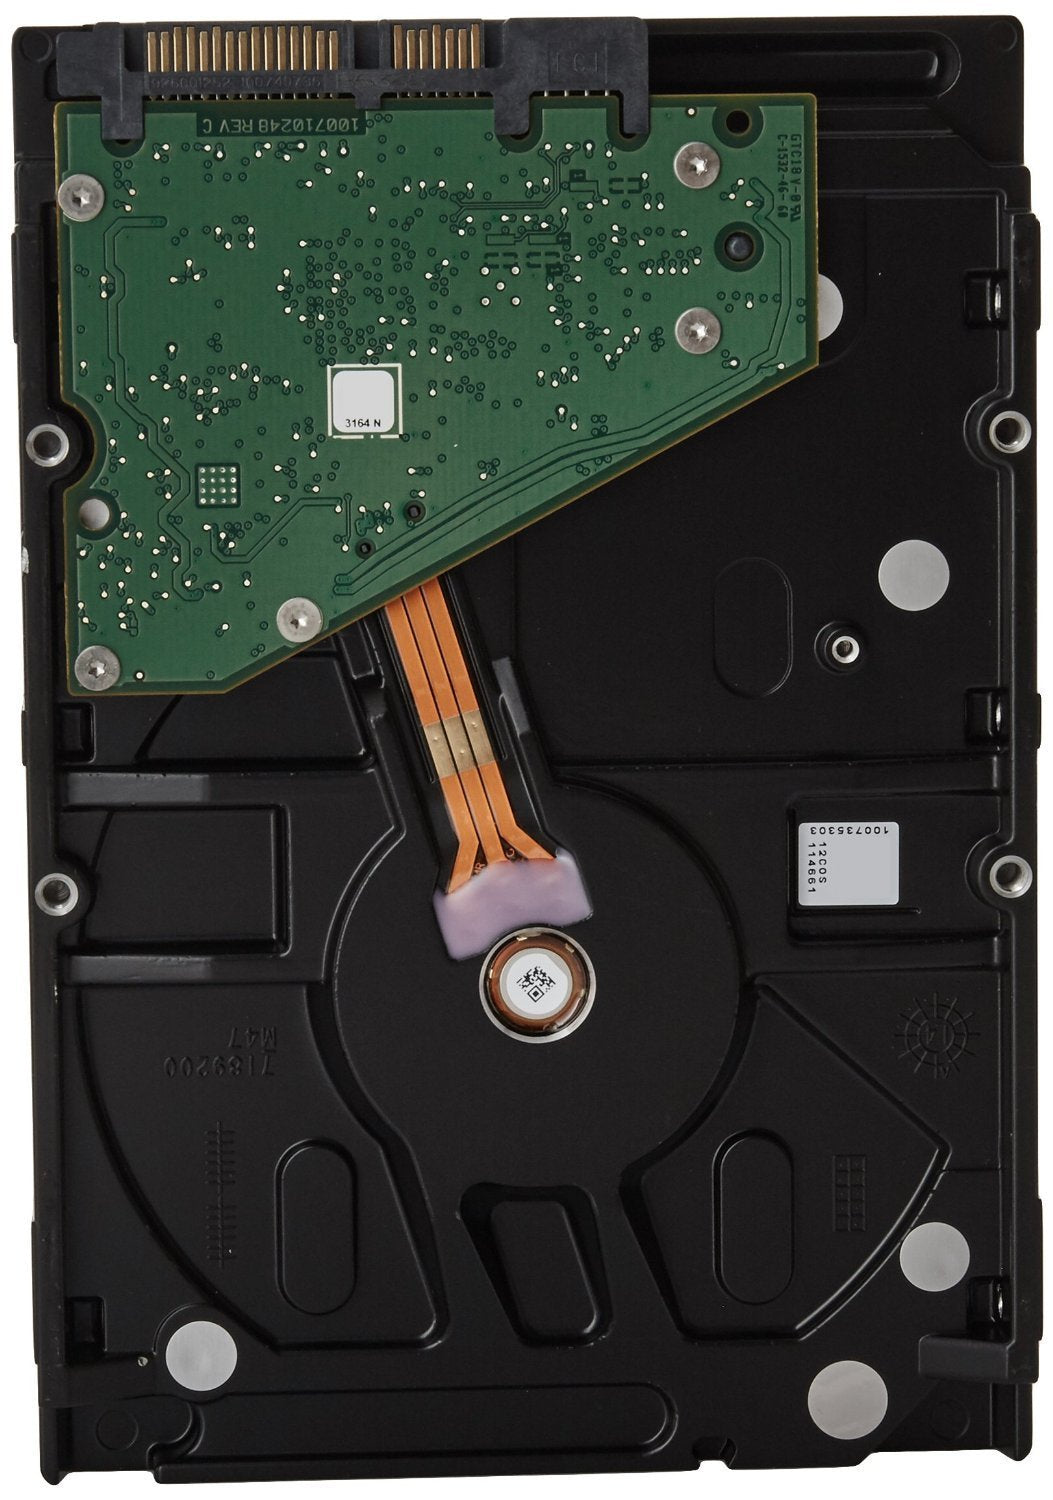 4TB SEAGATE SATA (2 YEAR Warranty) | Desktop Internal Hard Drive